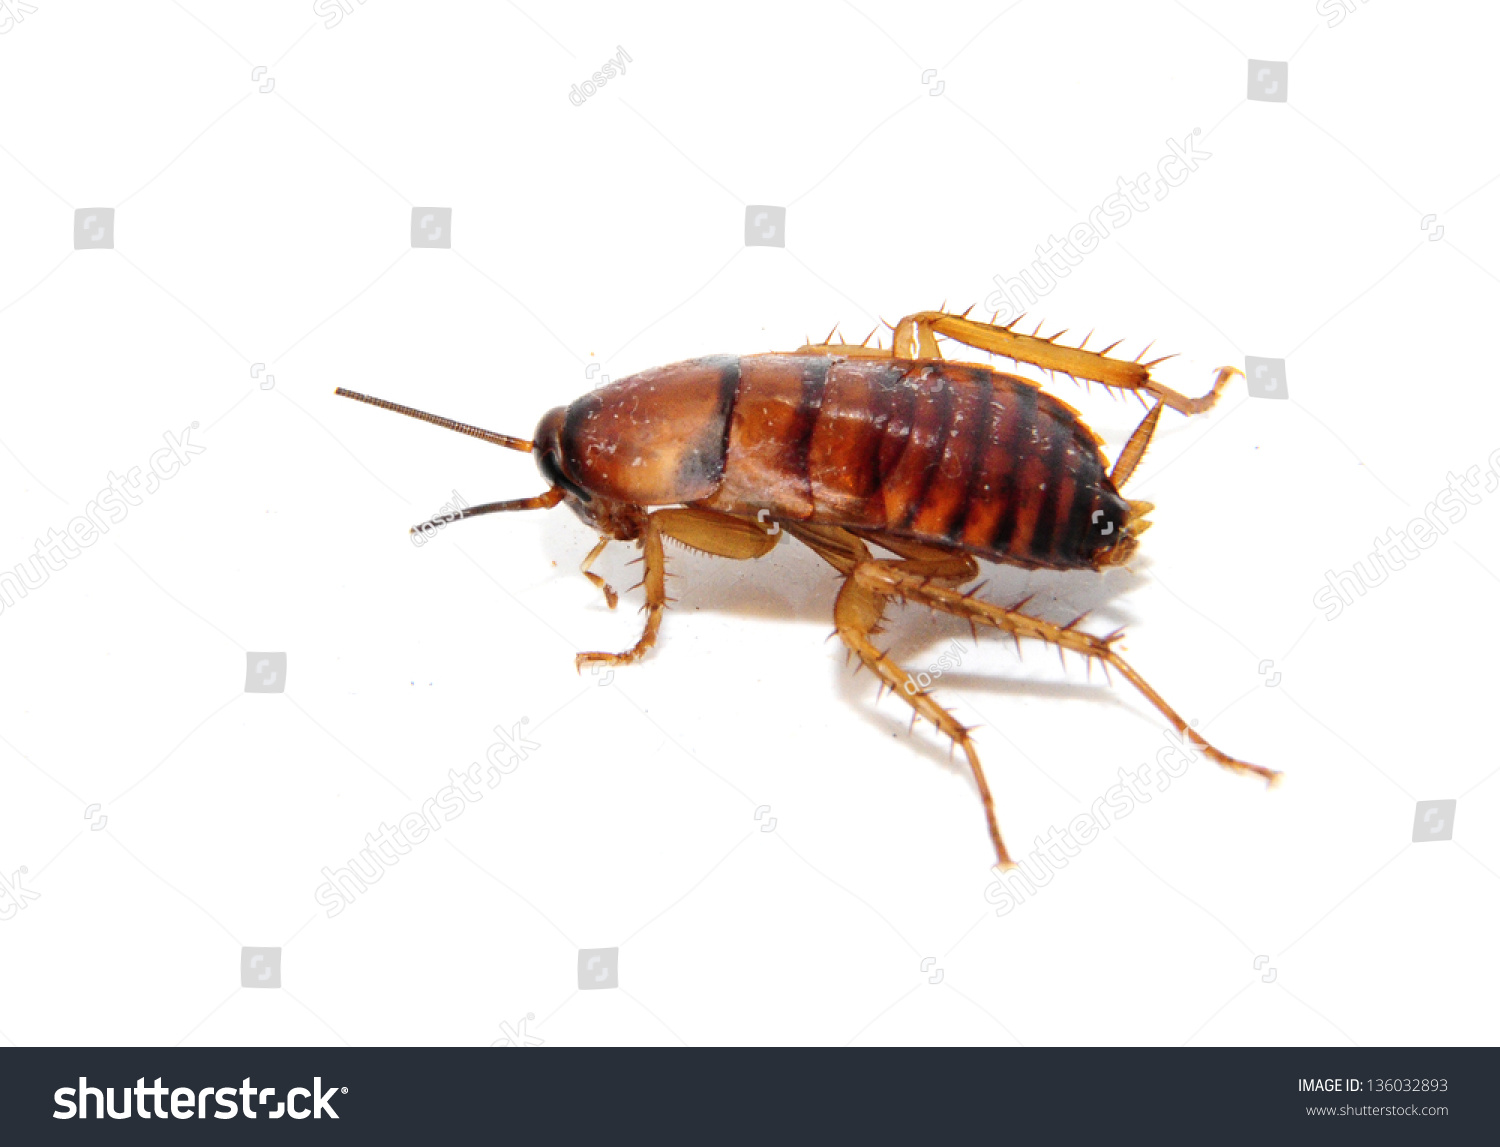 cockroach pictures Striped